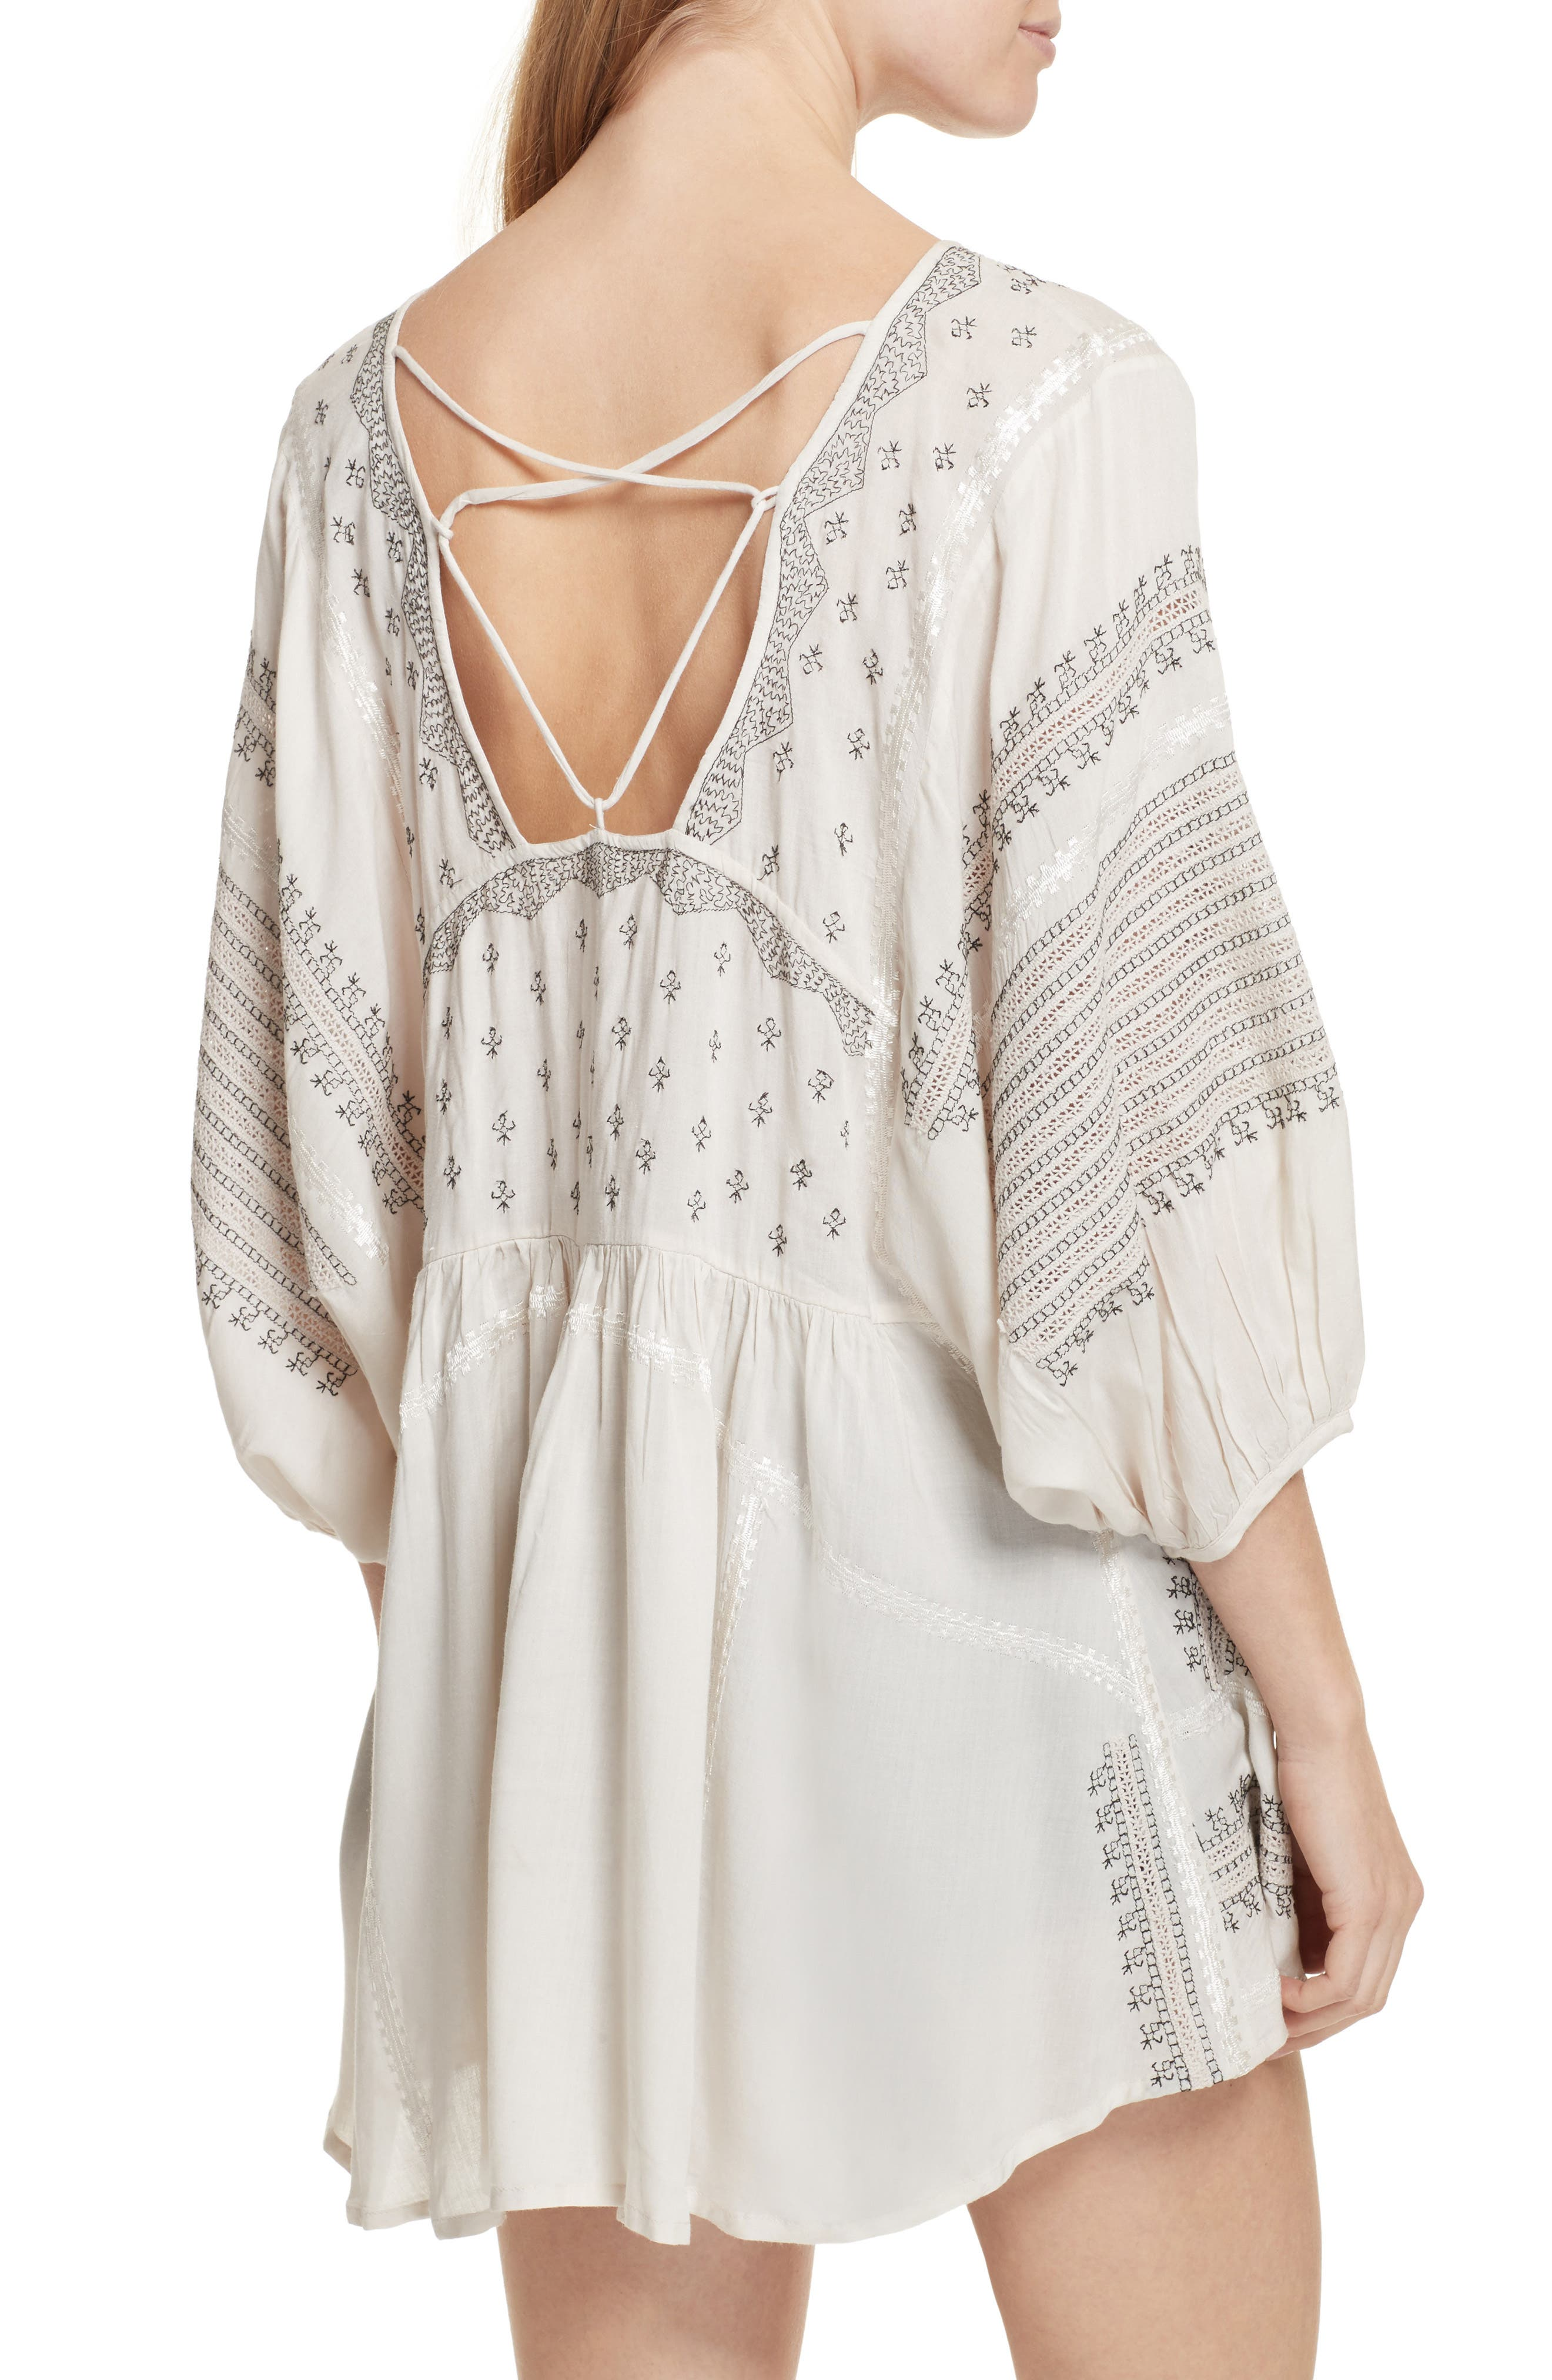 Wild One Embroidered Top,                             Alternate thumbnail 2, color,                             Ivory